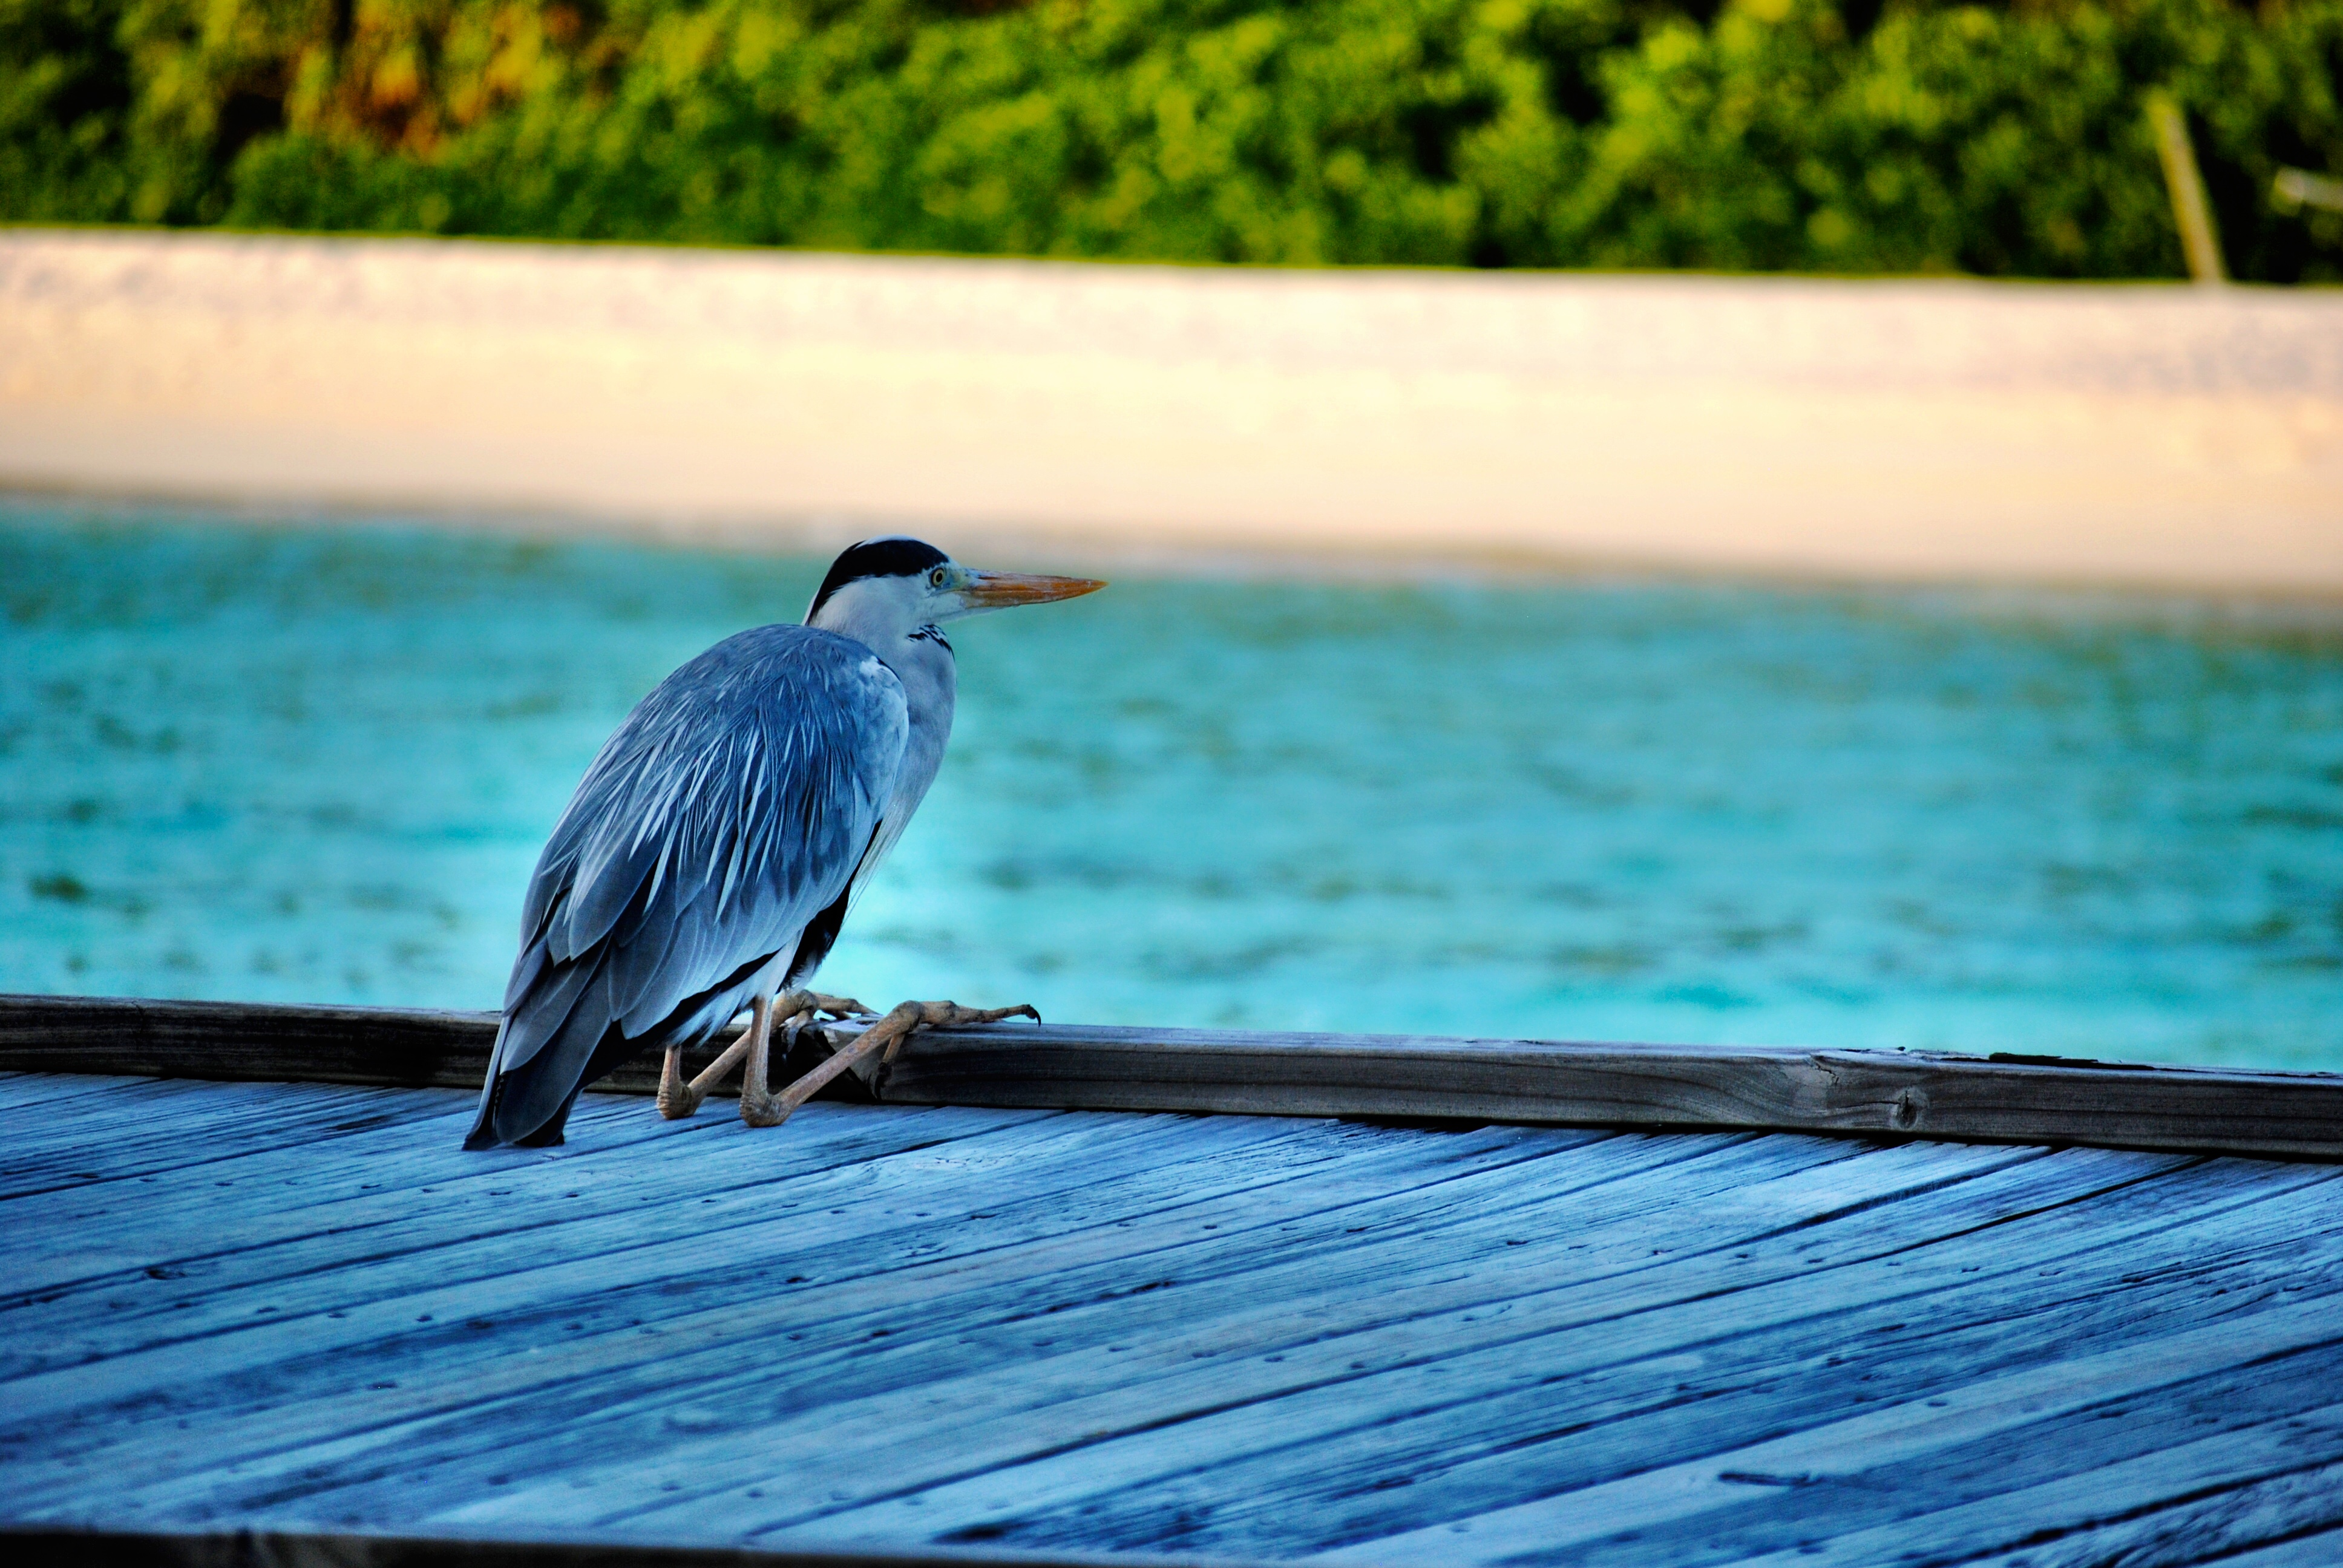 Heron in the Maldives